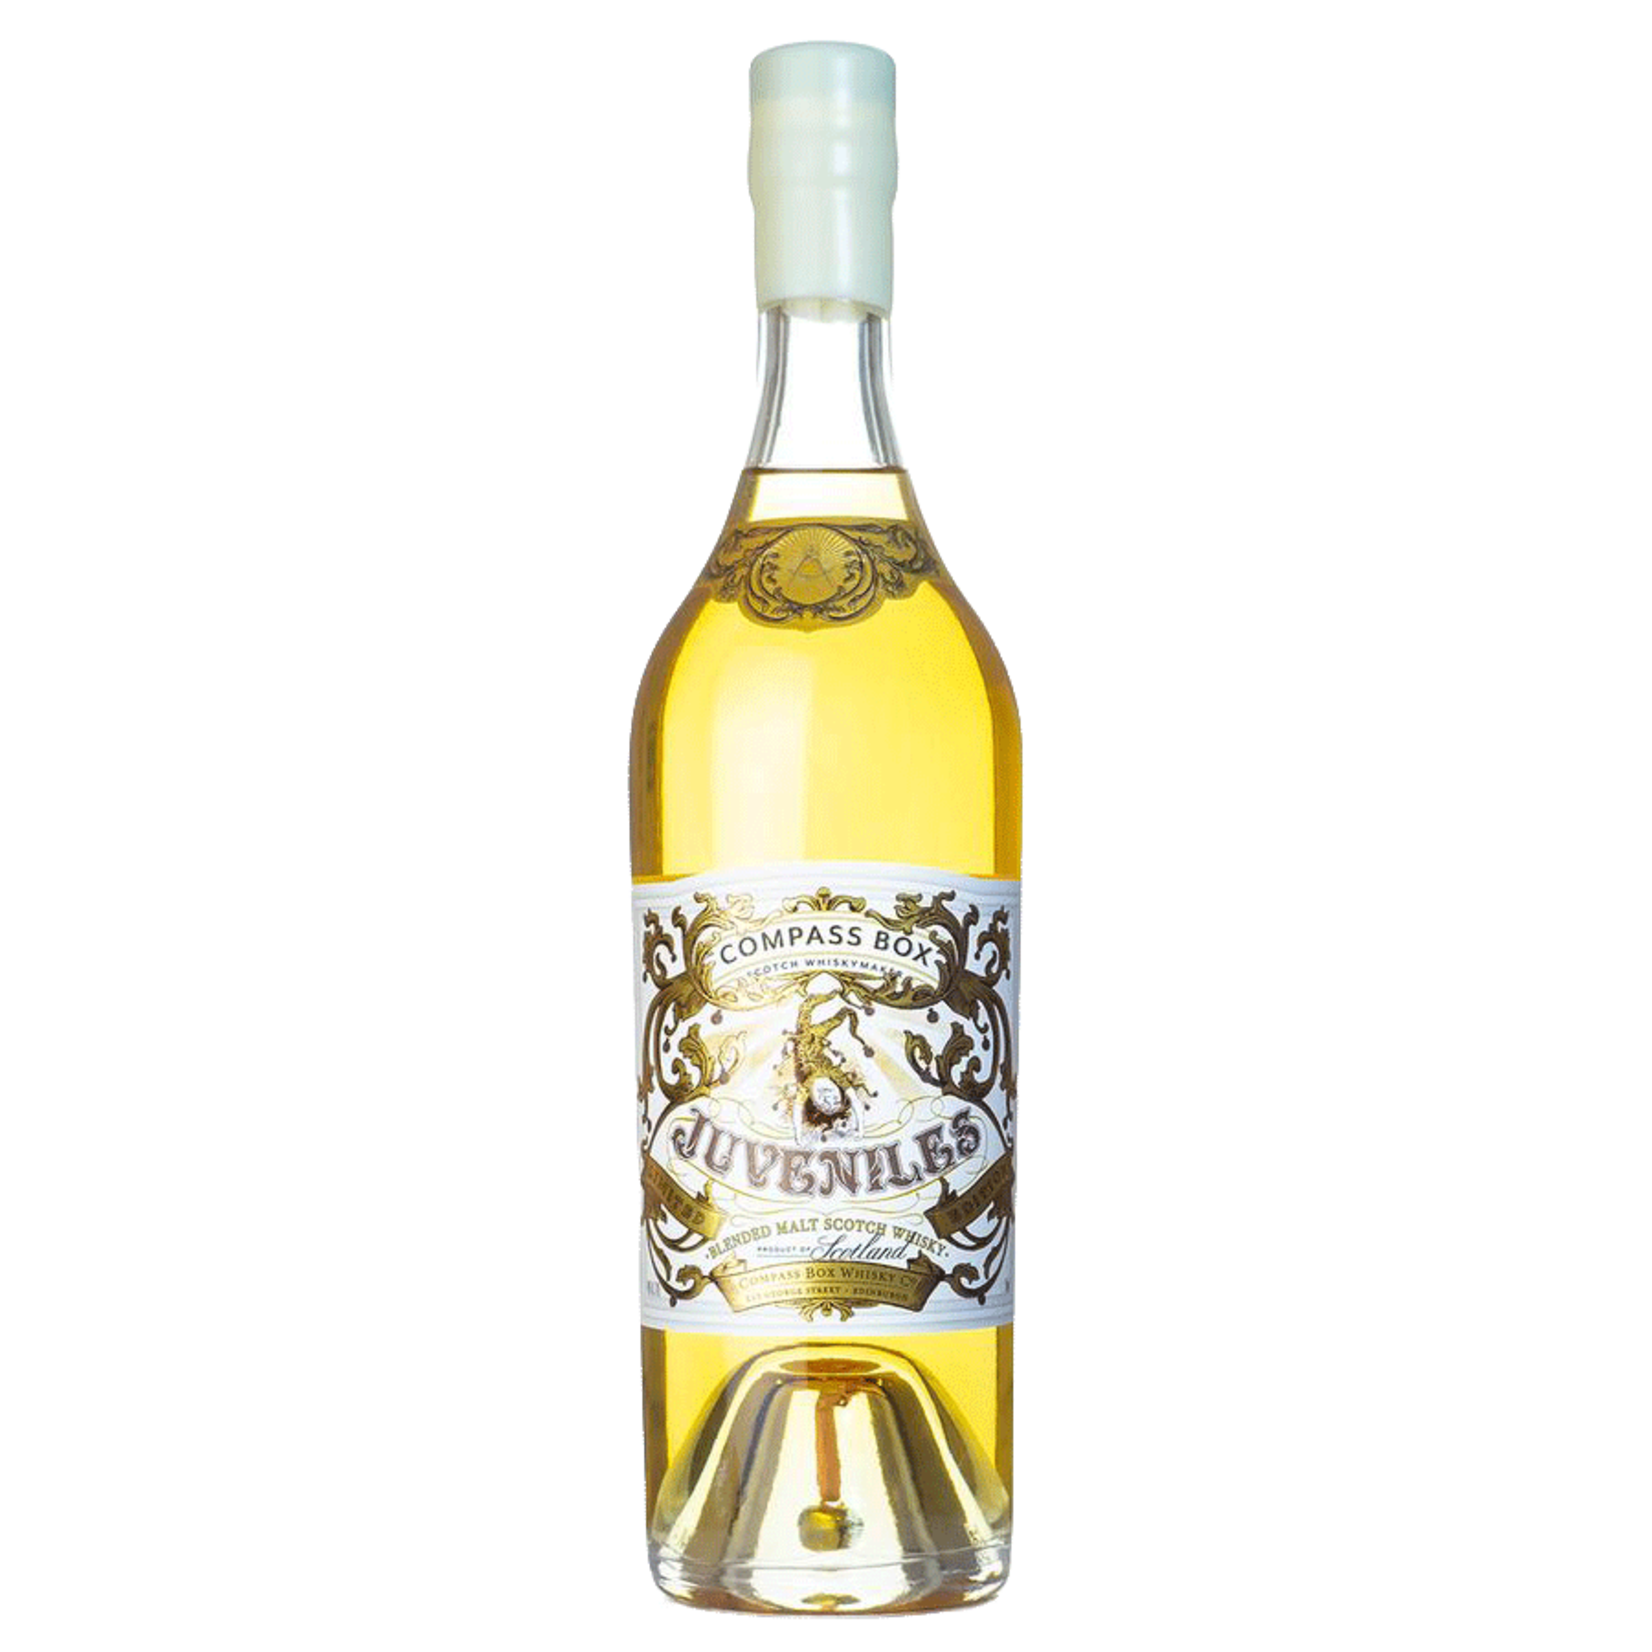 Spirits Compass Box Limited Edition Juveniles 2018